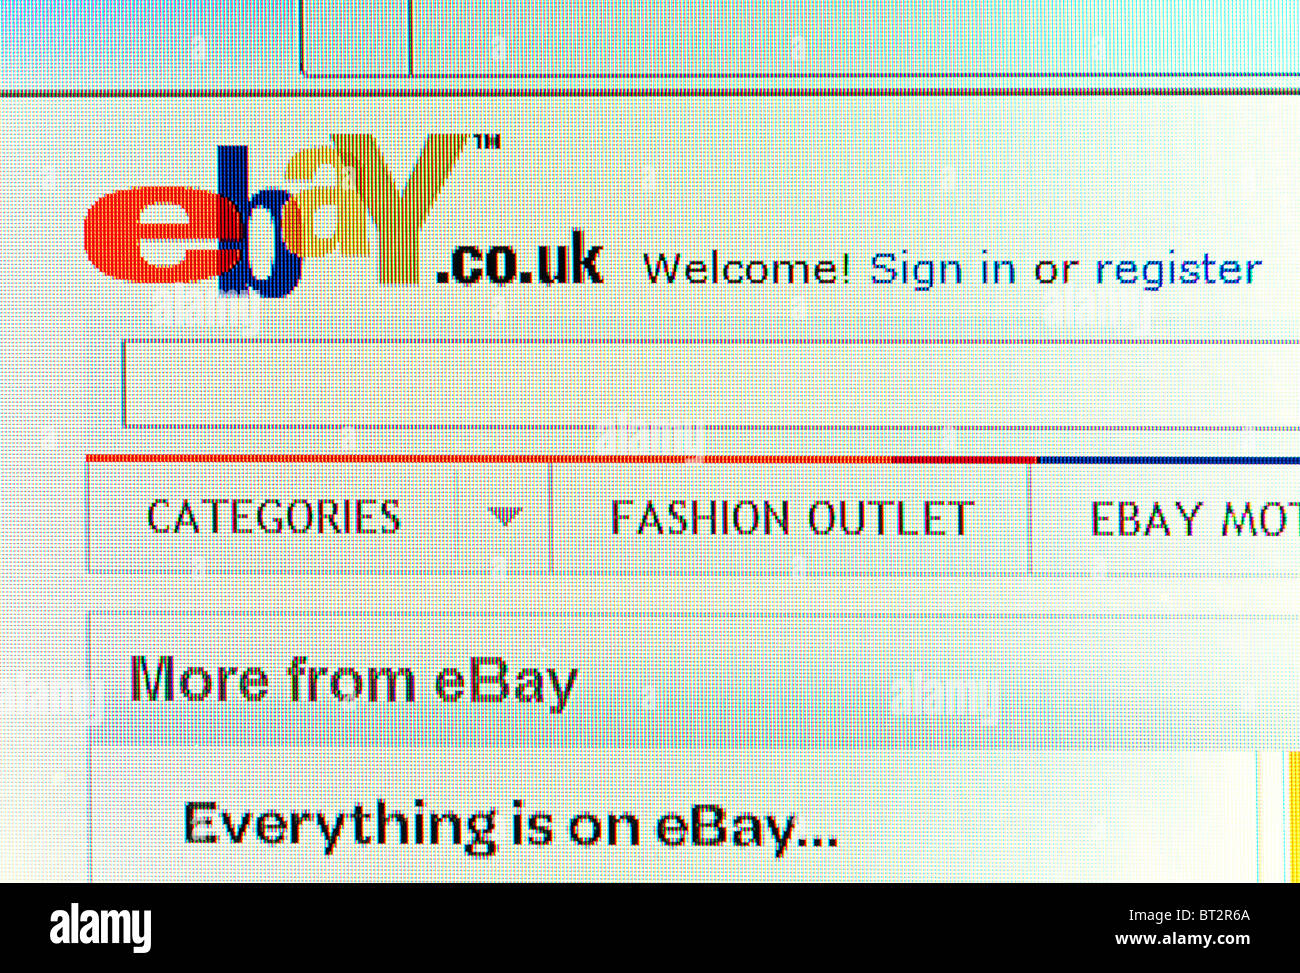 ebay screen shot welcome page - Stock Image